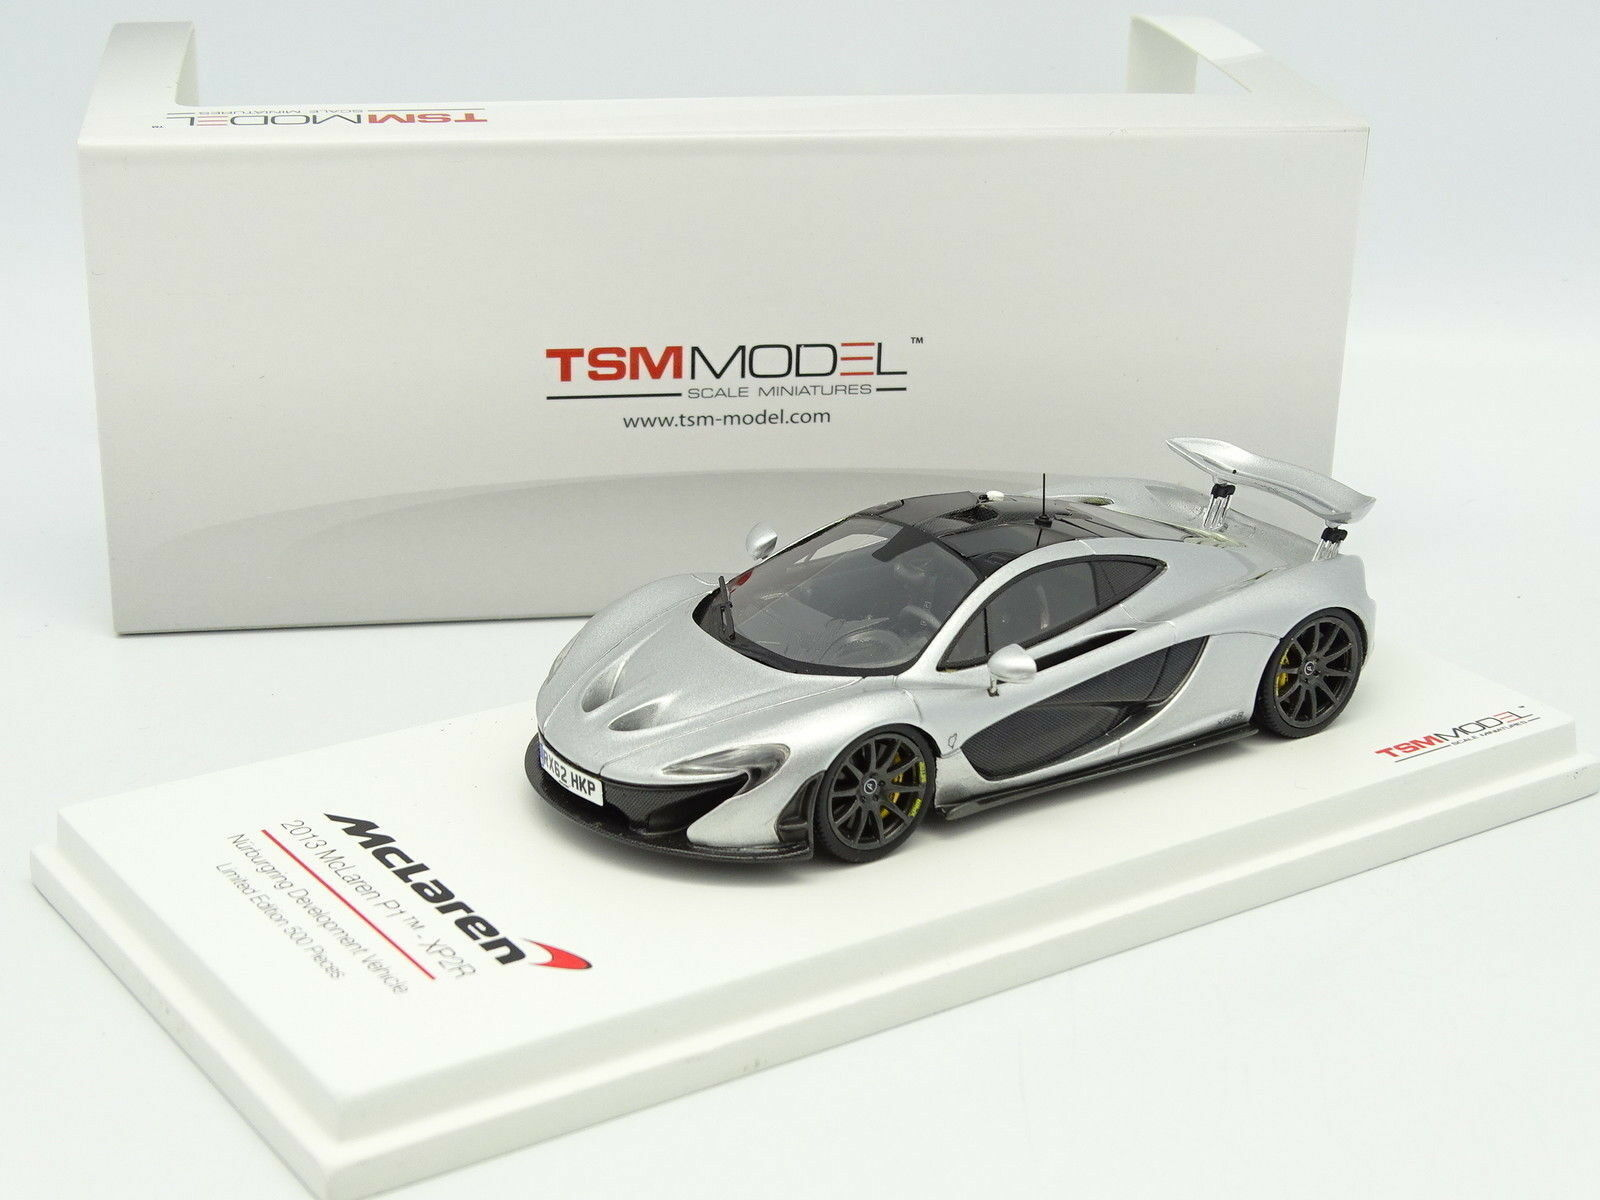 True Scale Modelo Tsm 1 43- Mclaren P1 XP2R Nurburgring Development Coche 2013